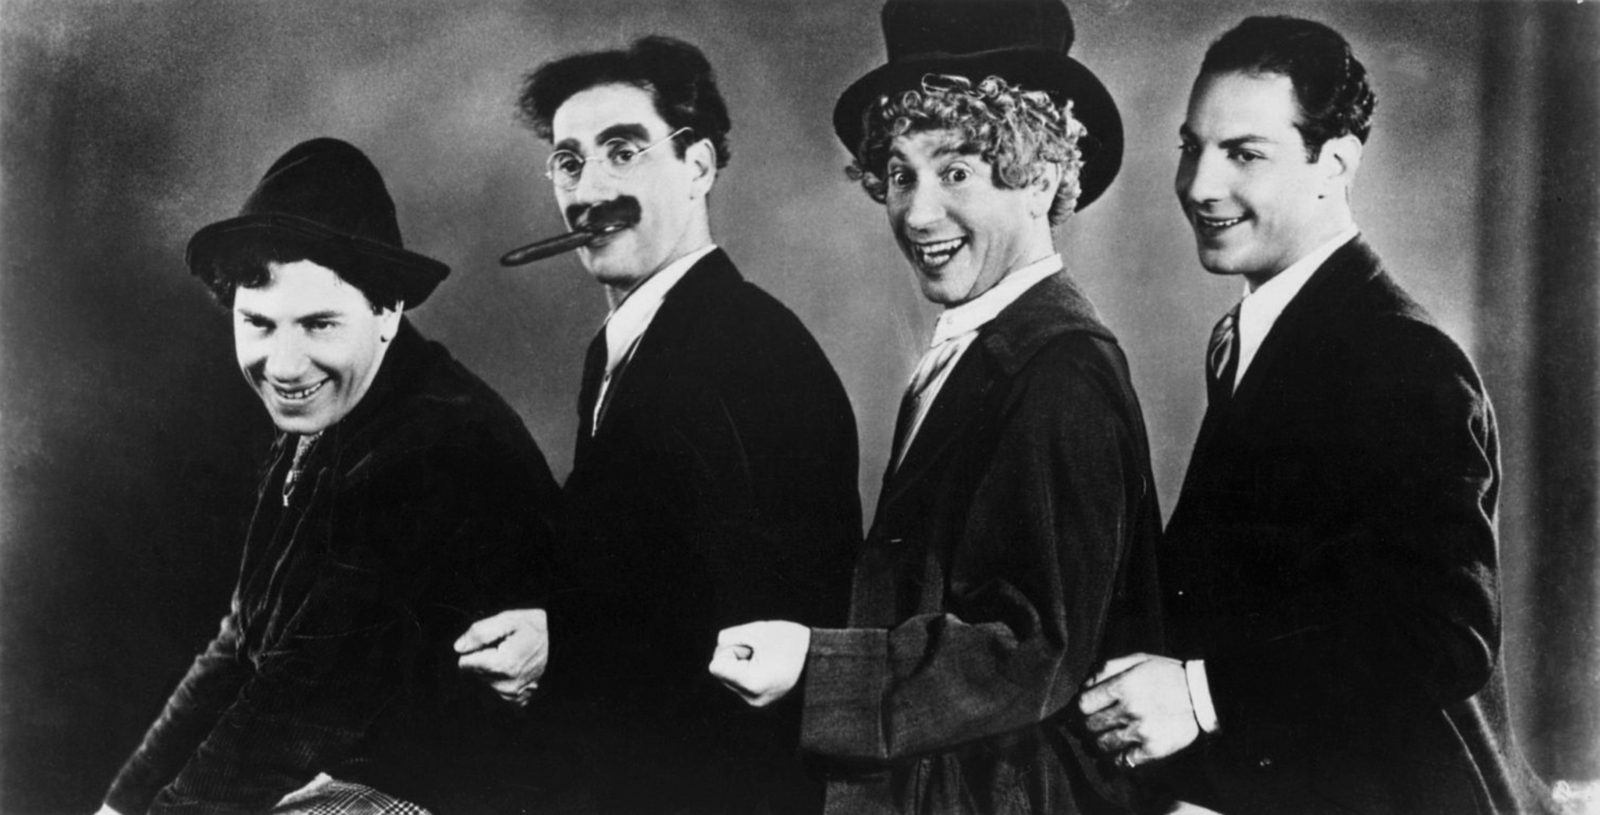 Marx-Brothers lateet